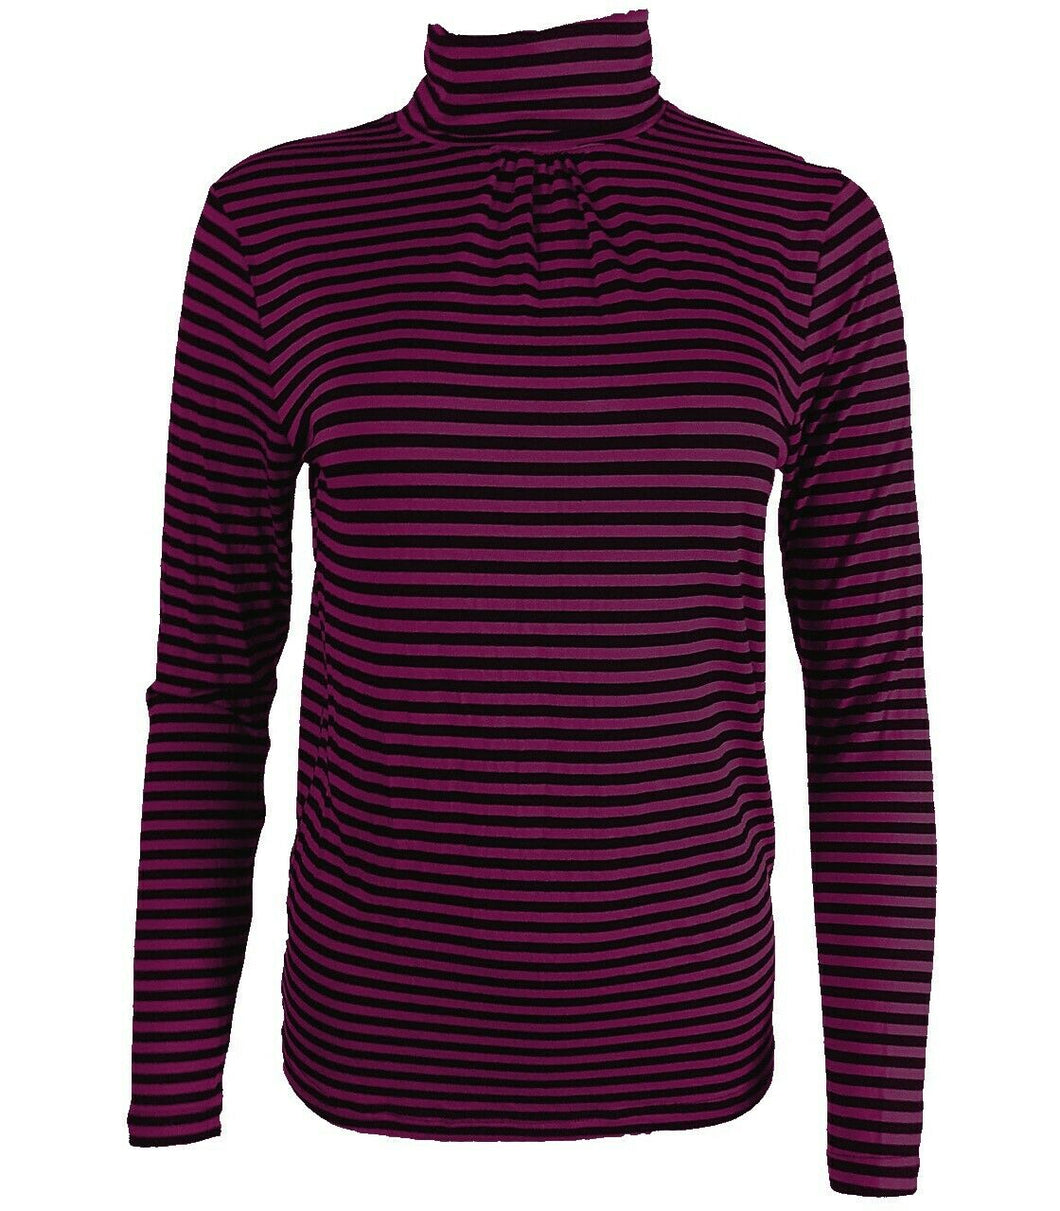 Black & Maroon Striped Long sleeve Turtle Polo Neck Top